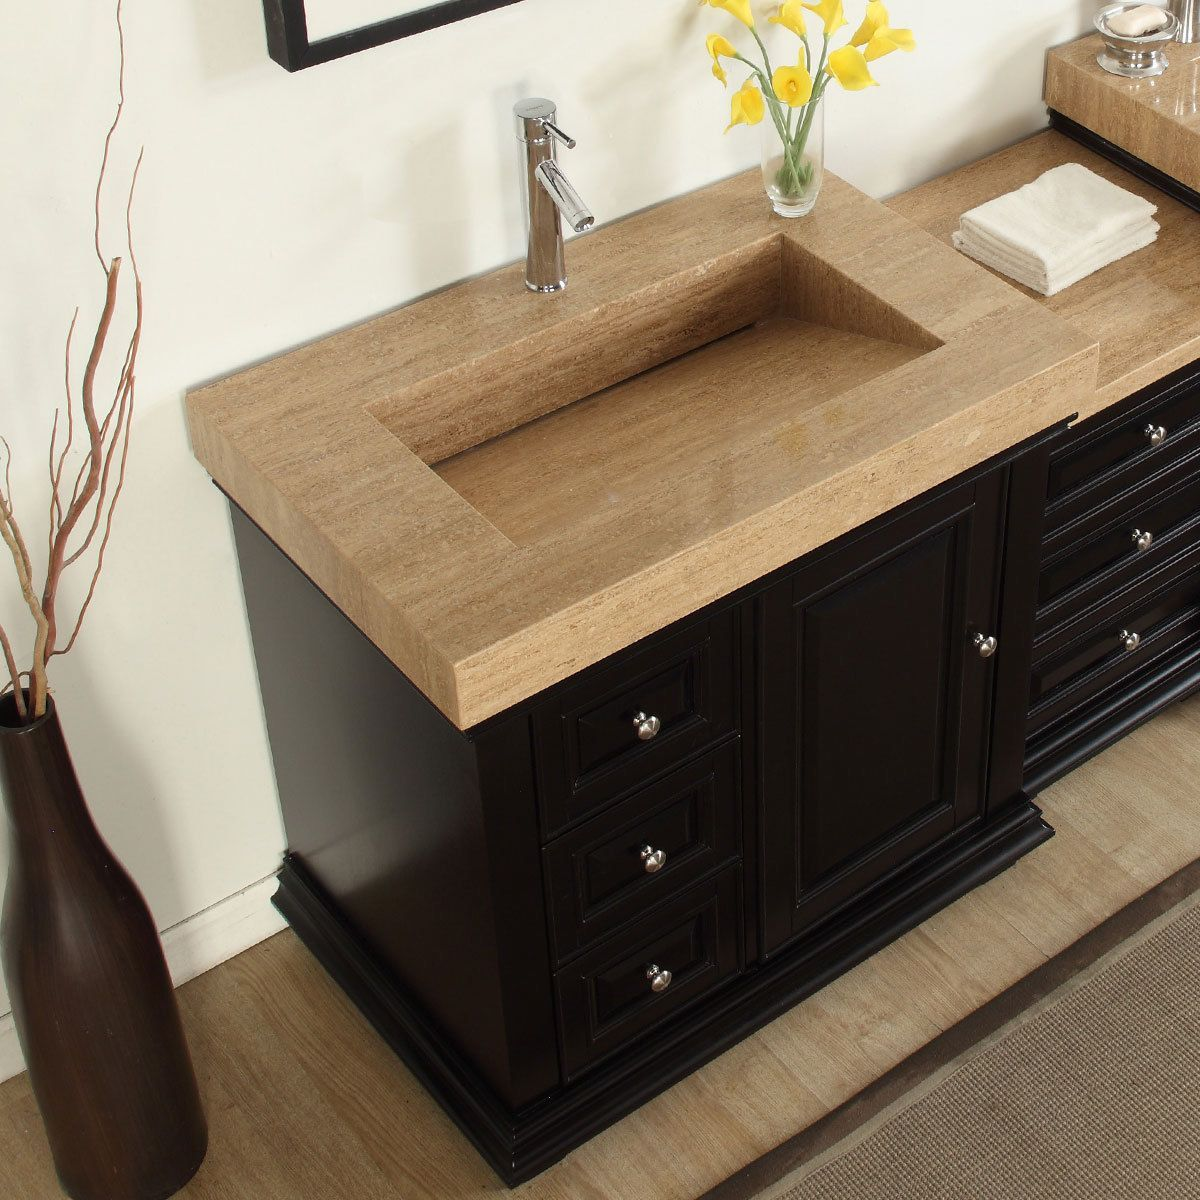 Silkroad Exclusive 55.5-inch Integrated Travertine Sink ...